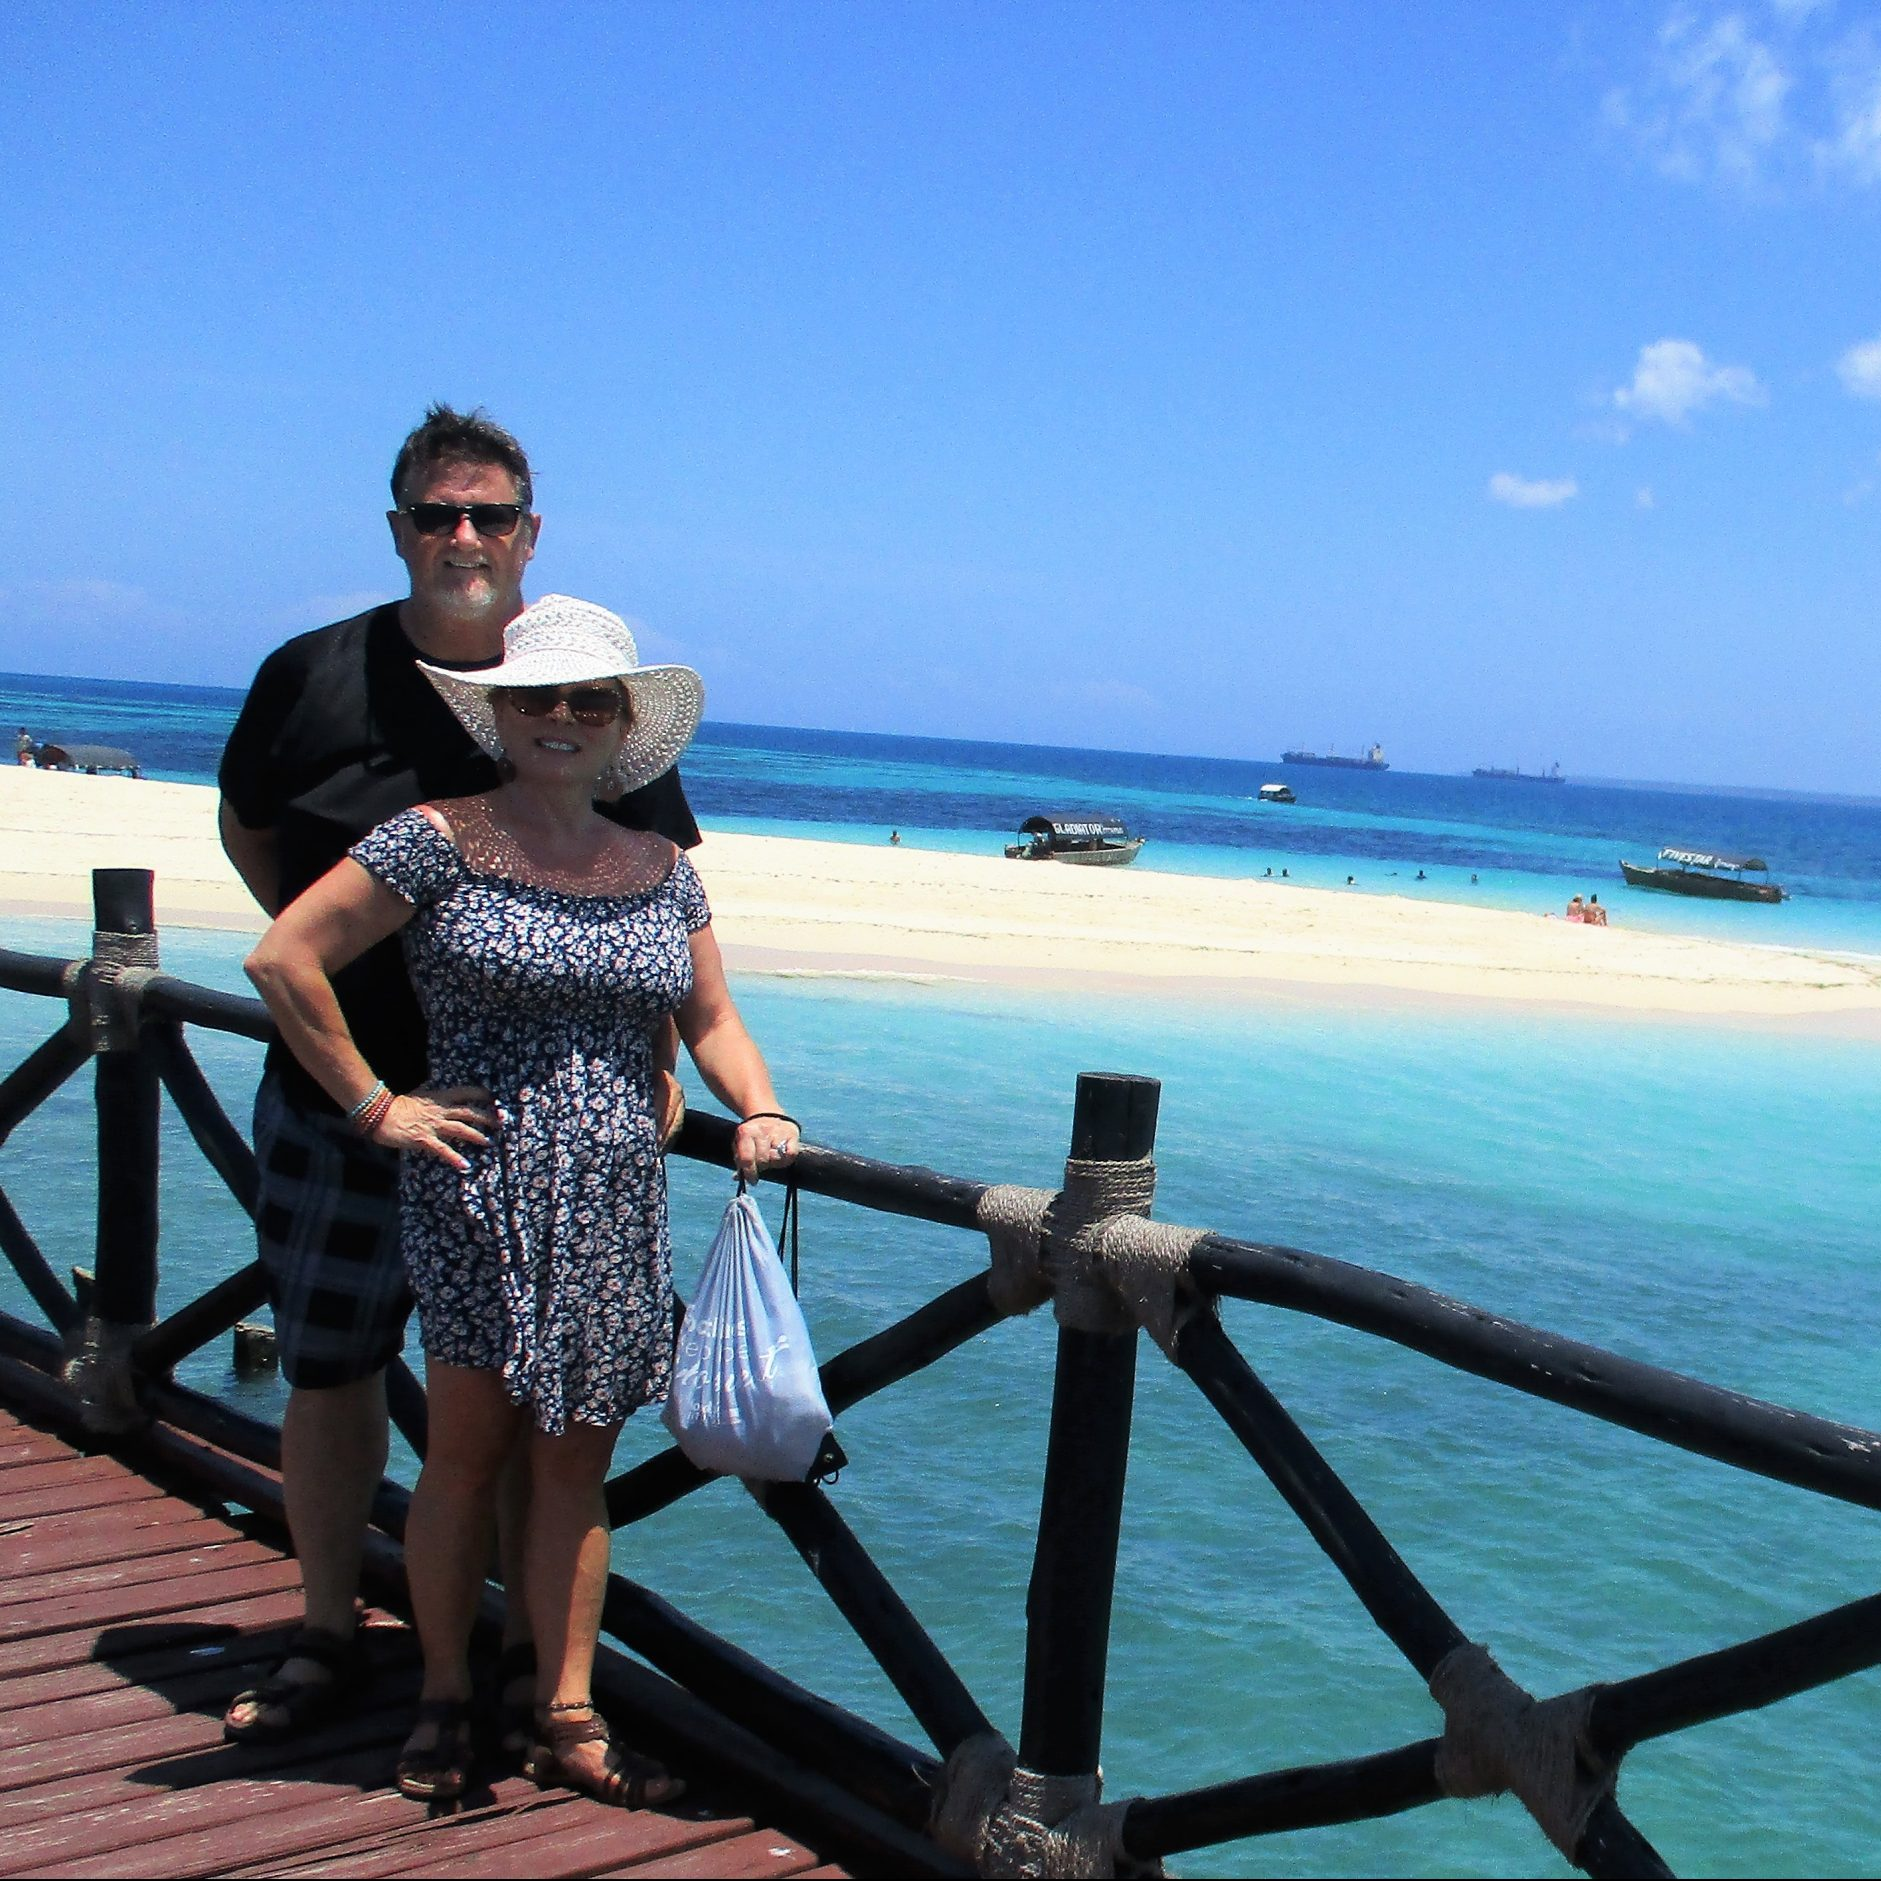 Ed and his wife at Prison Island, one of the best reasons to visit Zanzibar